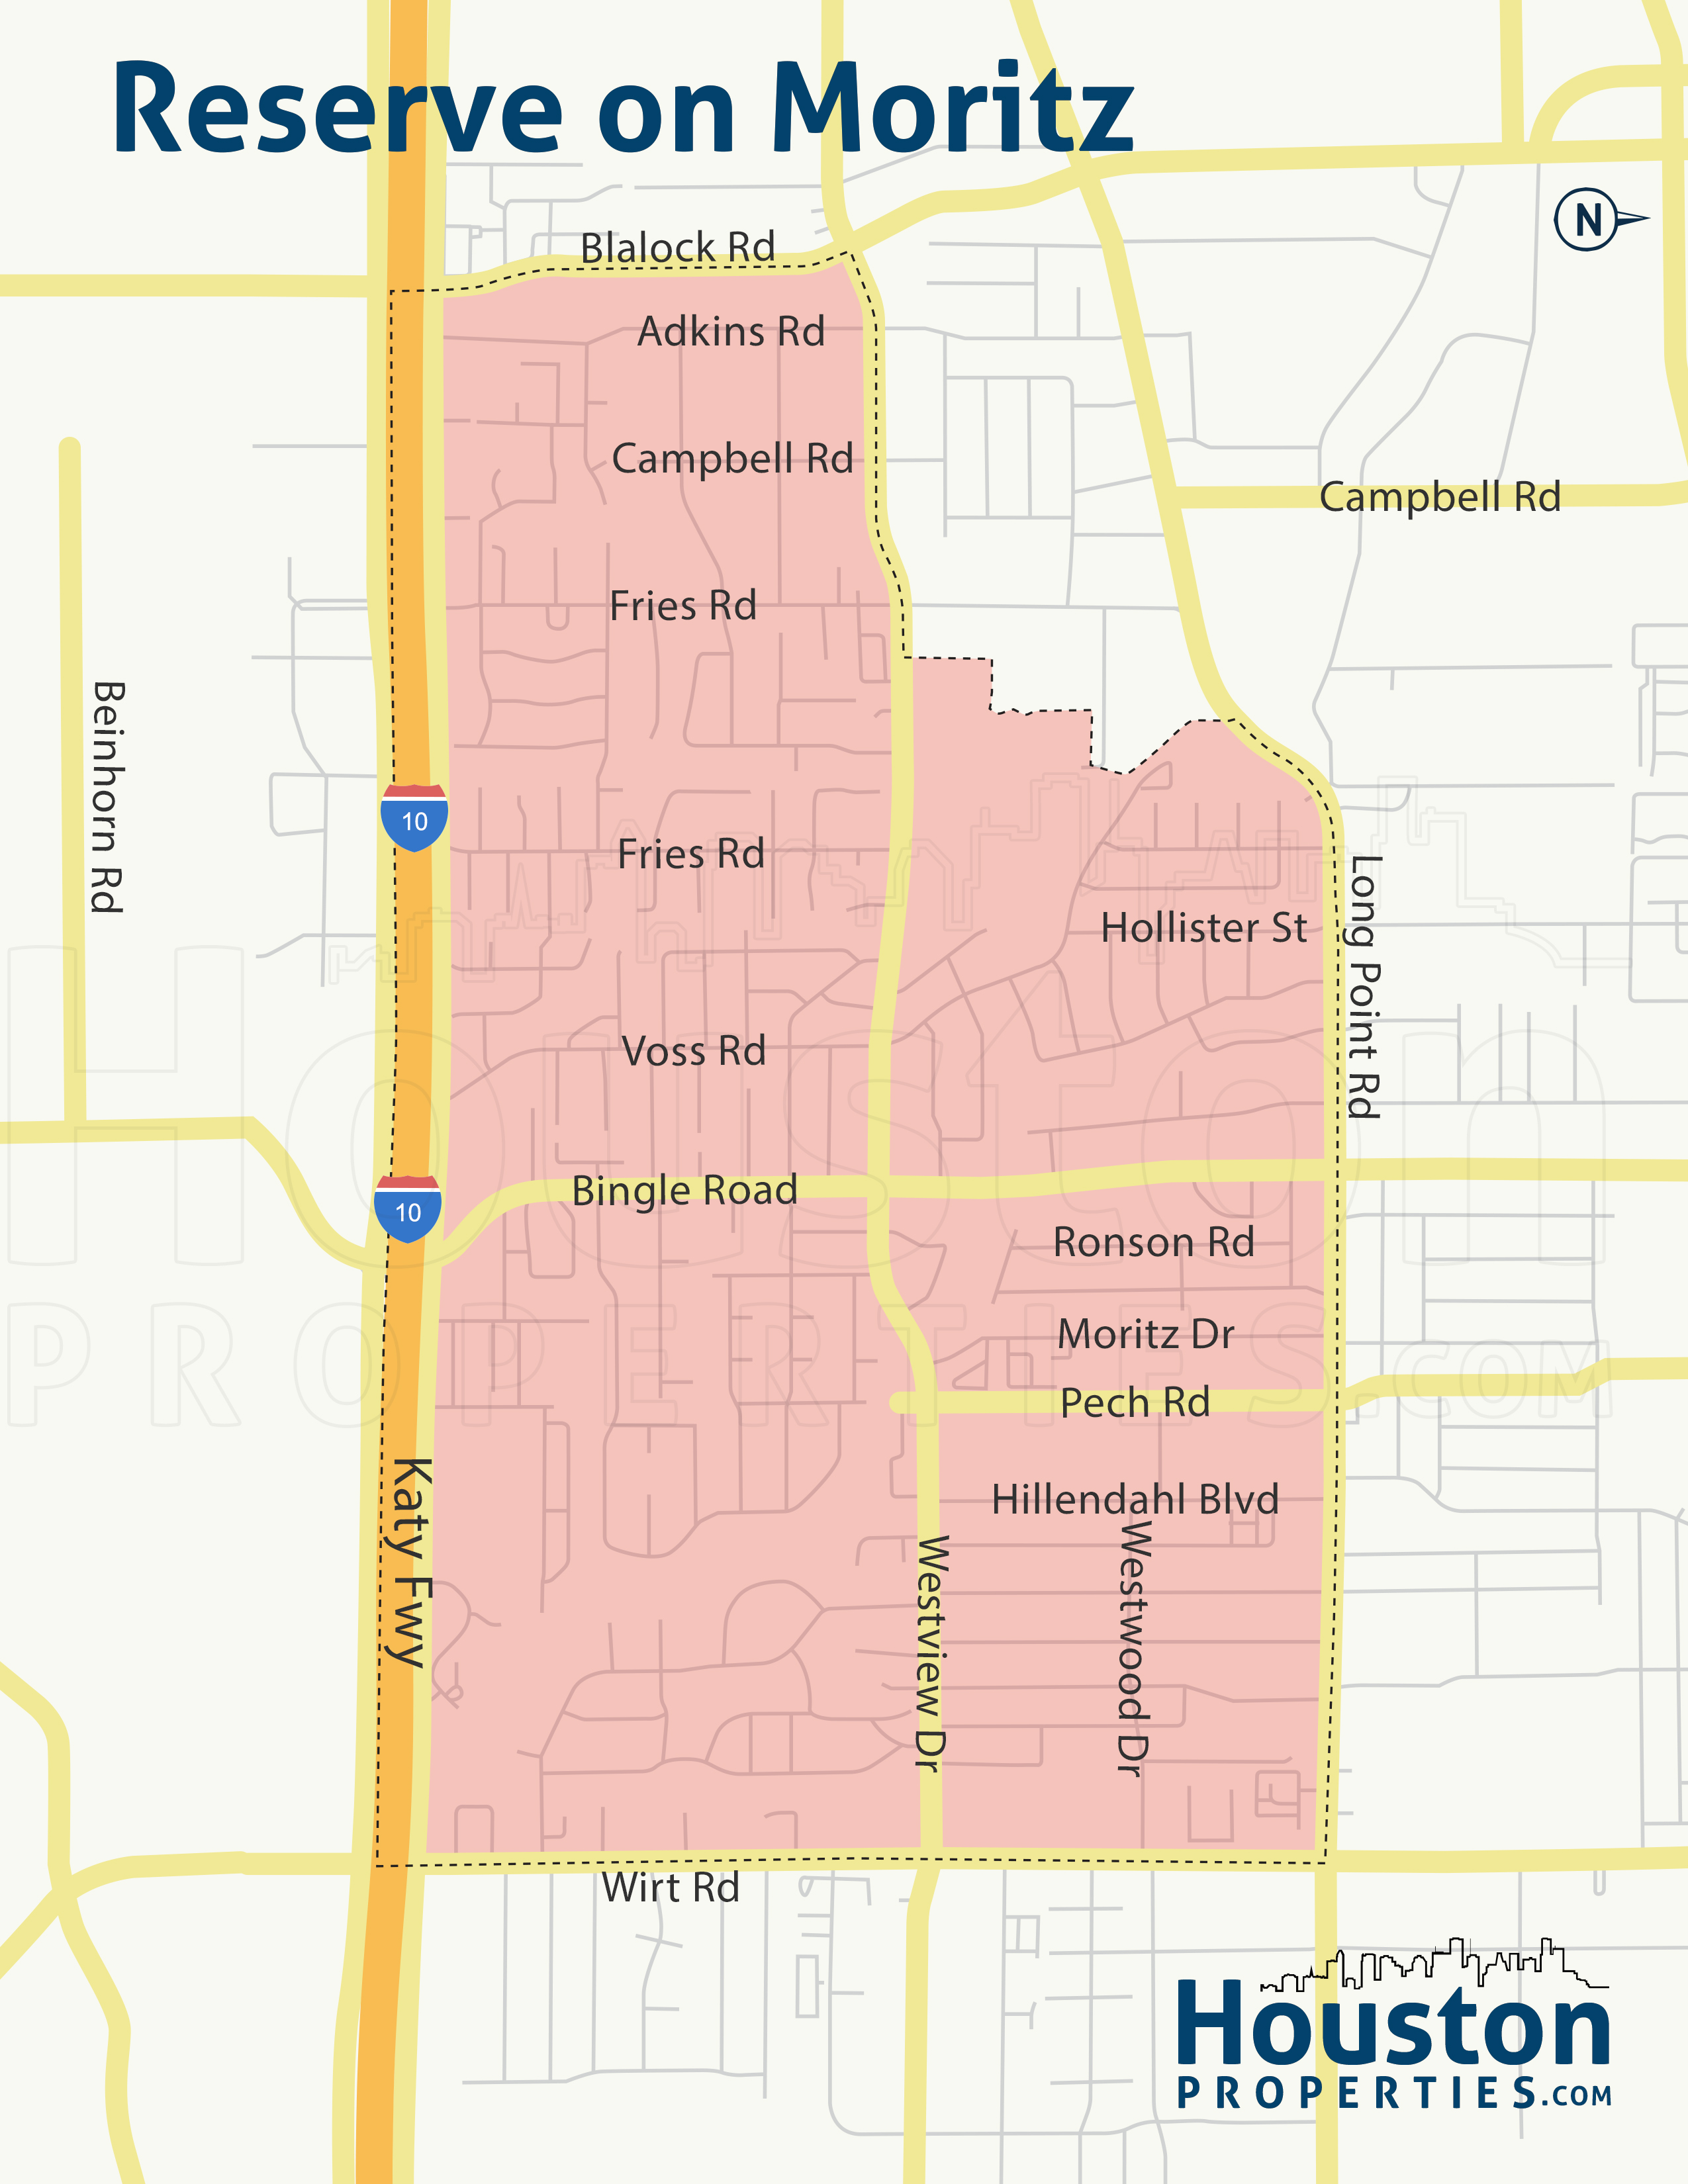 Reserve on Moritz neighborhood map